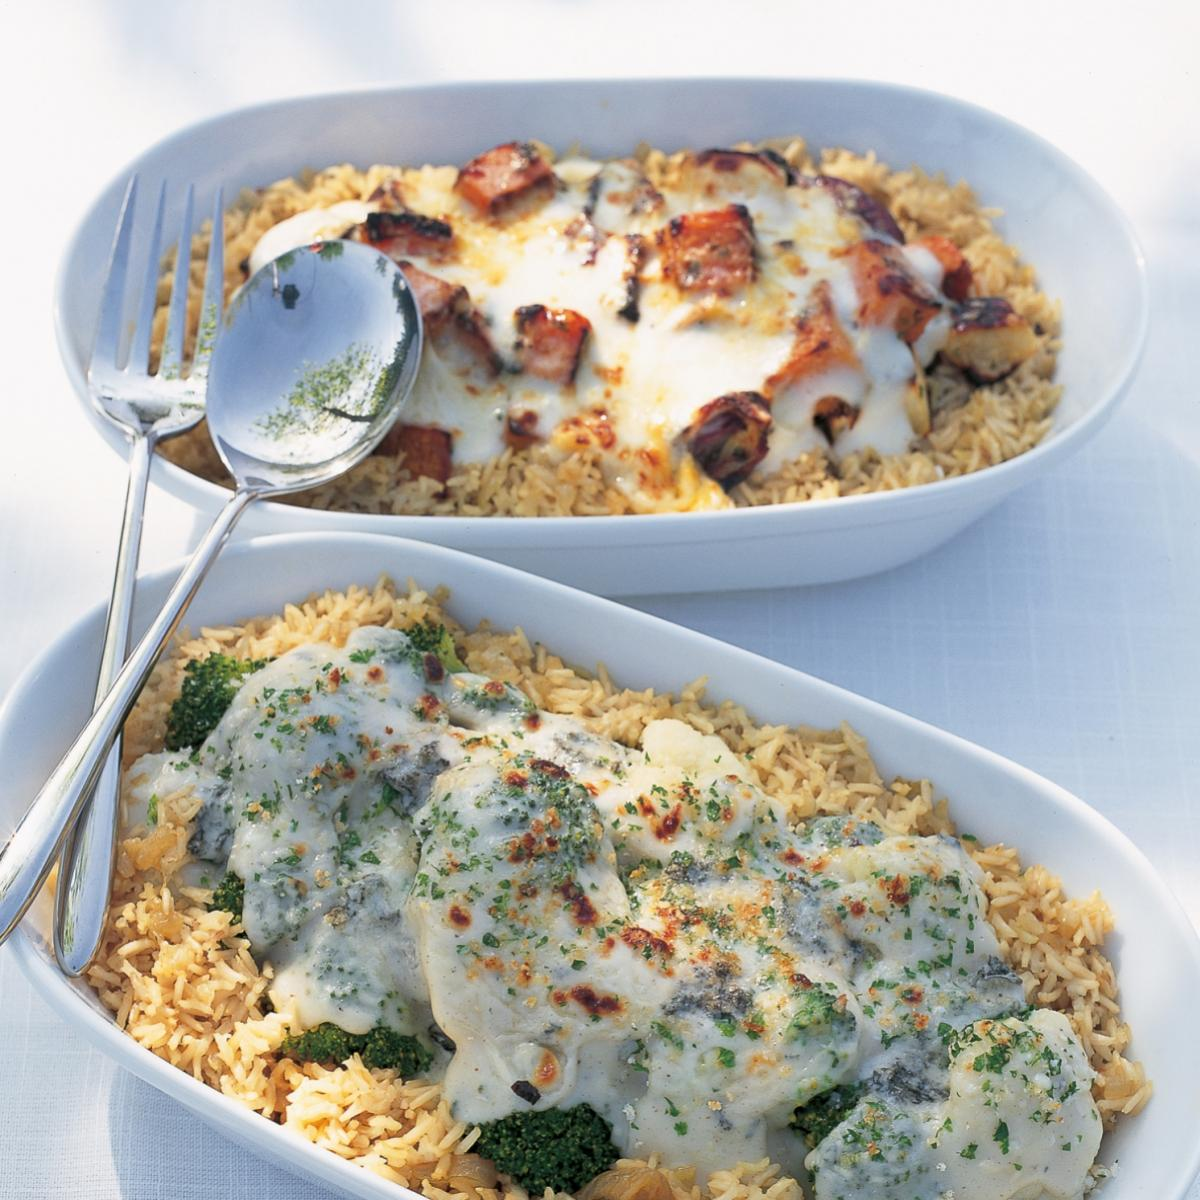 A picture of Delia's Roasted Vegetable and Brown Rice Gratin recipe